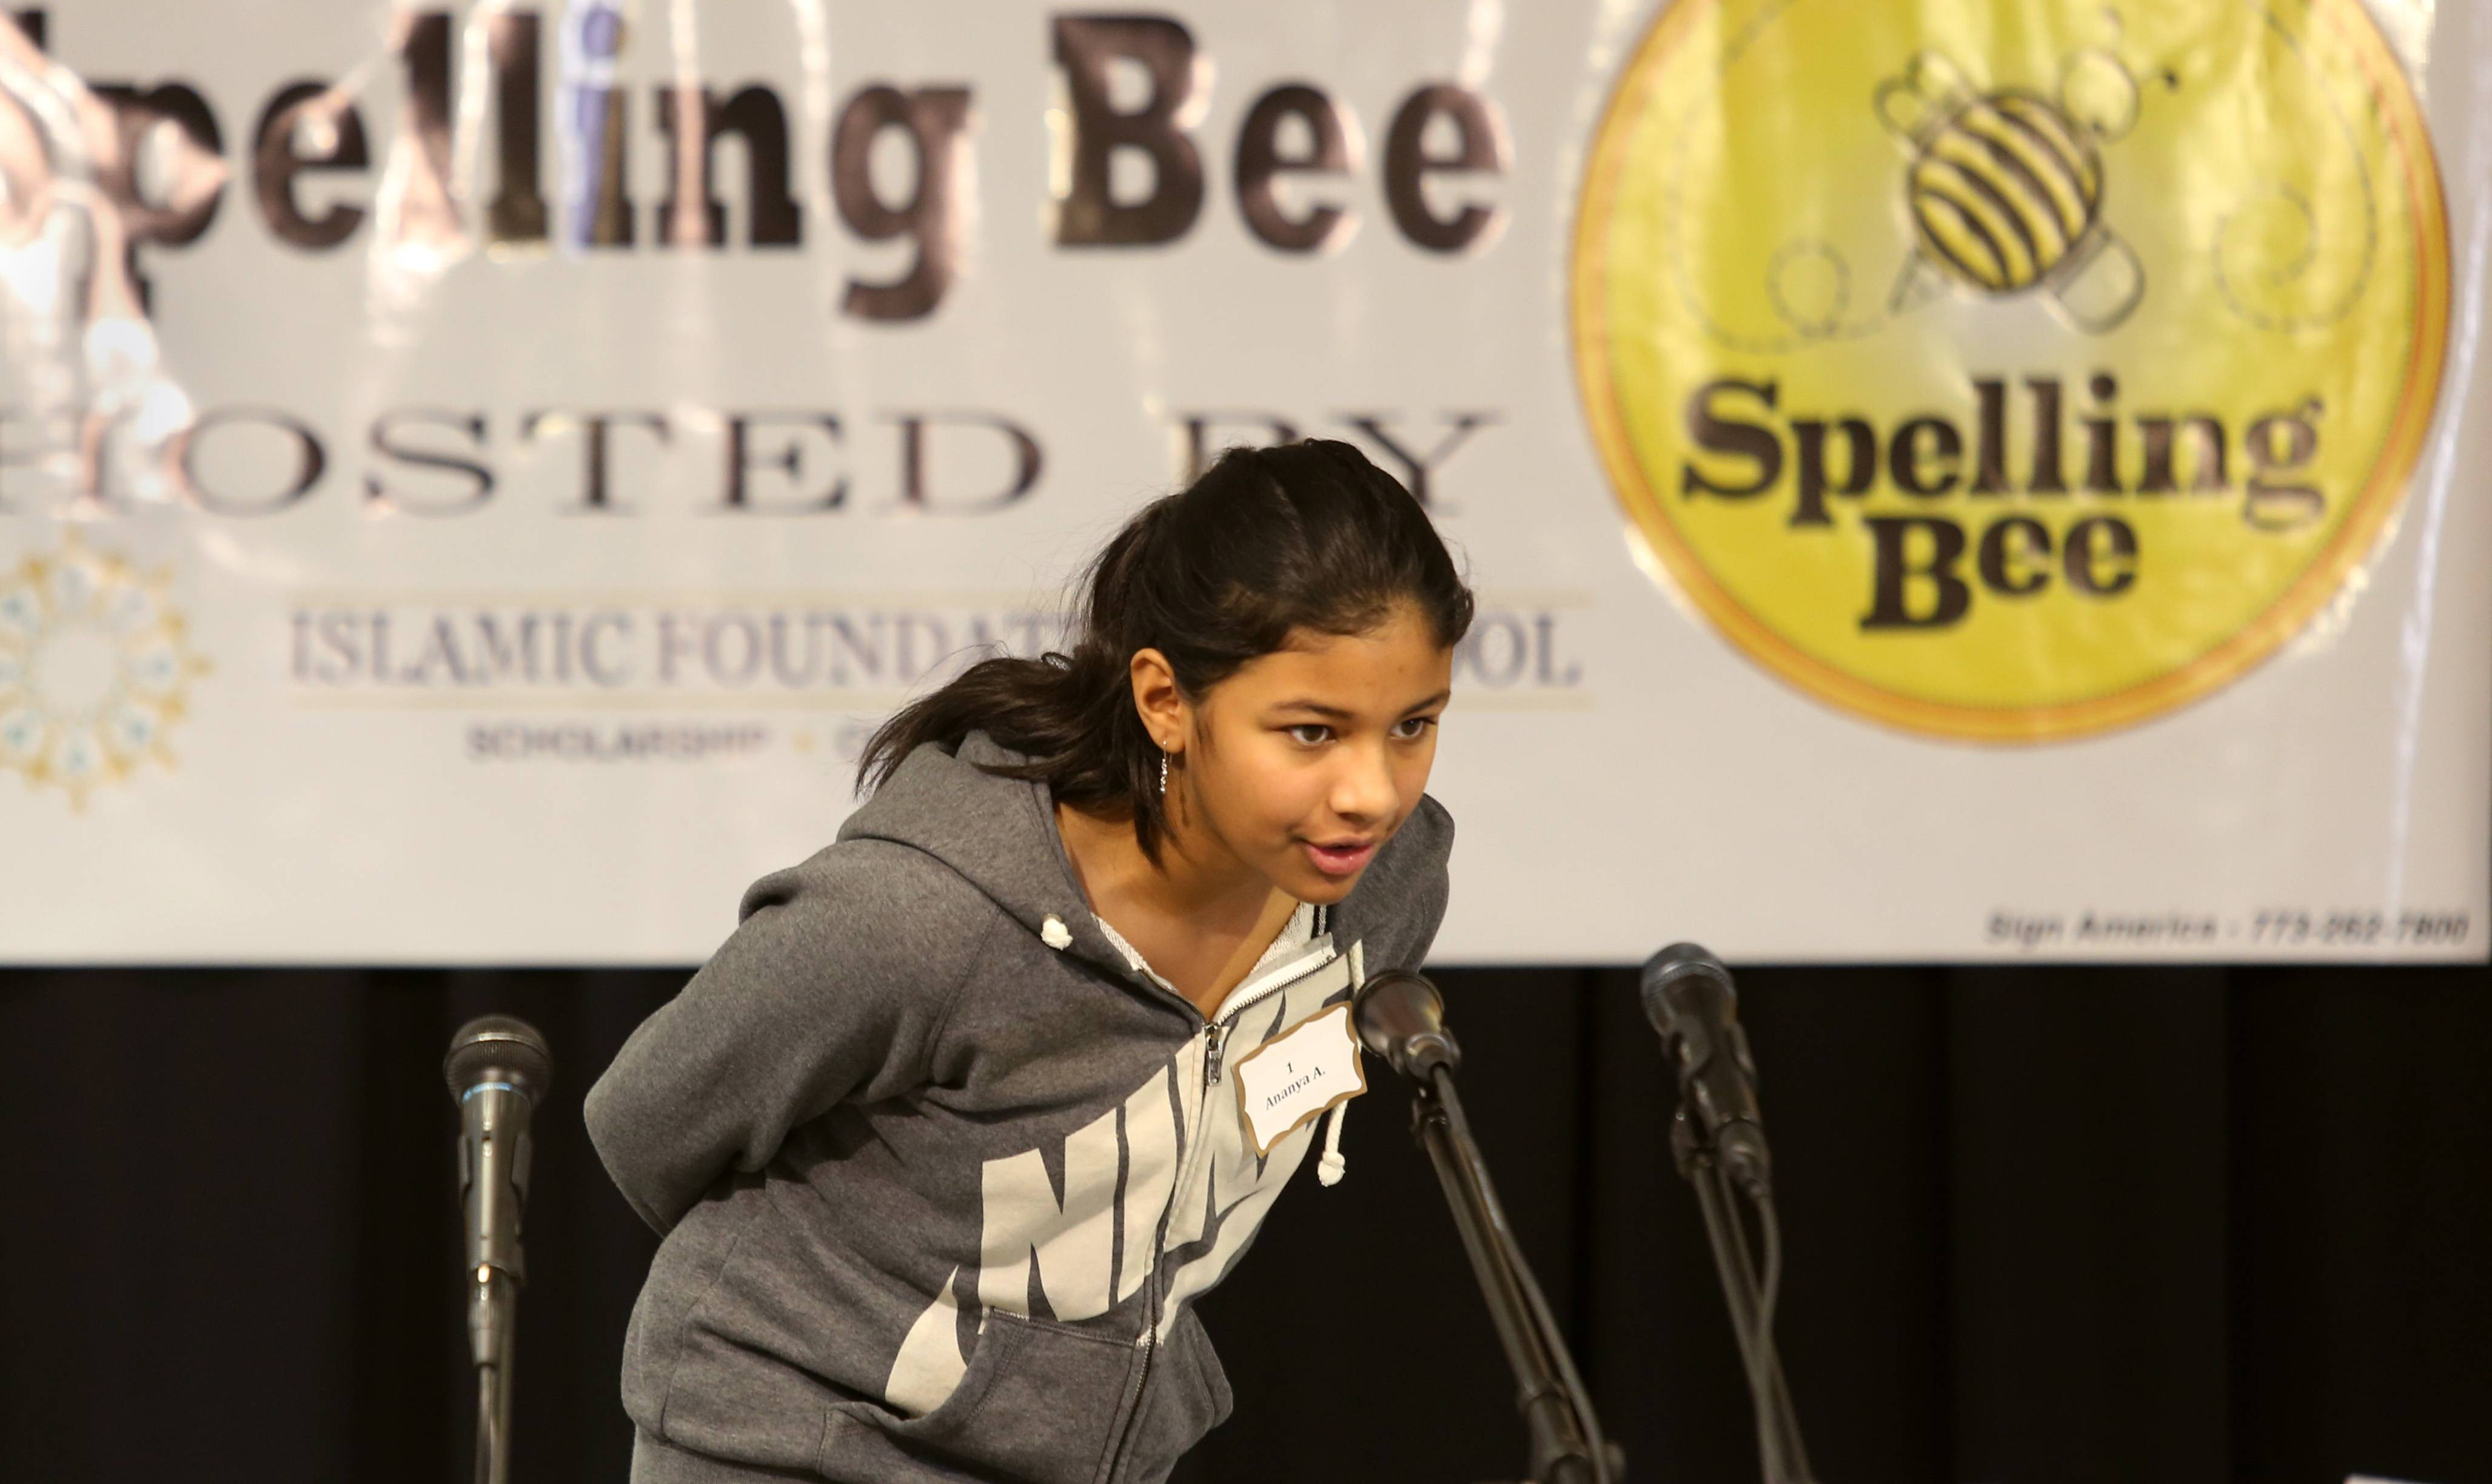 Ananya Asthana from Avery Coonley School in Downers Grove emerged Wednesday as one of three winners from a field of 24 students from private and parochial schools across DuPage County to advance to the next round of the Scripps National Spelling Bee competition.